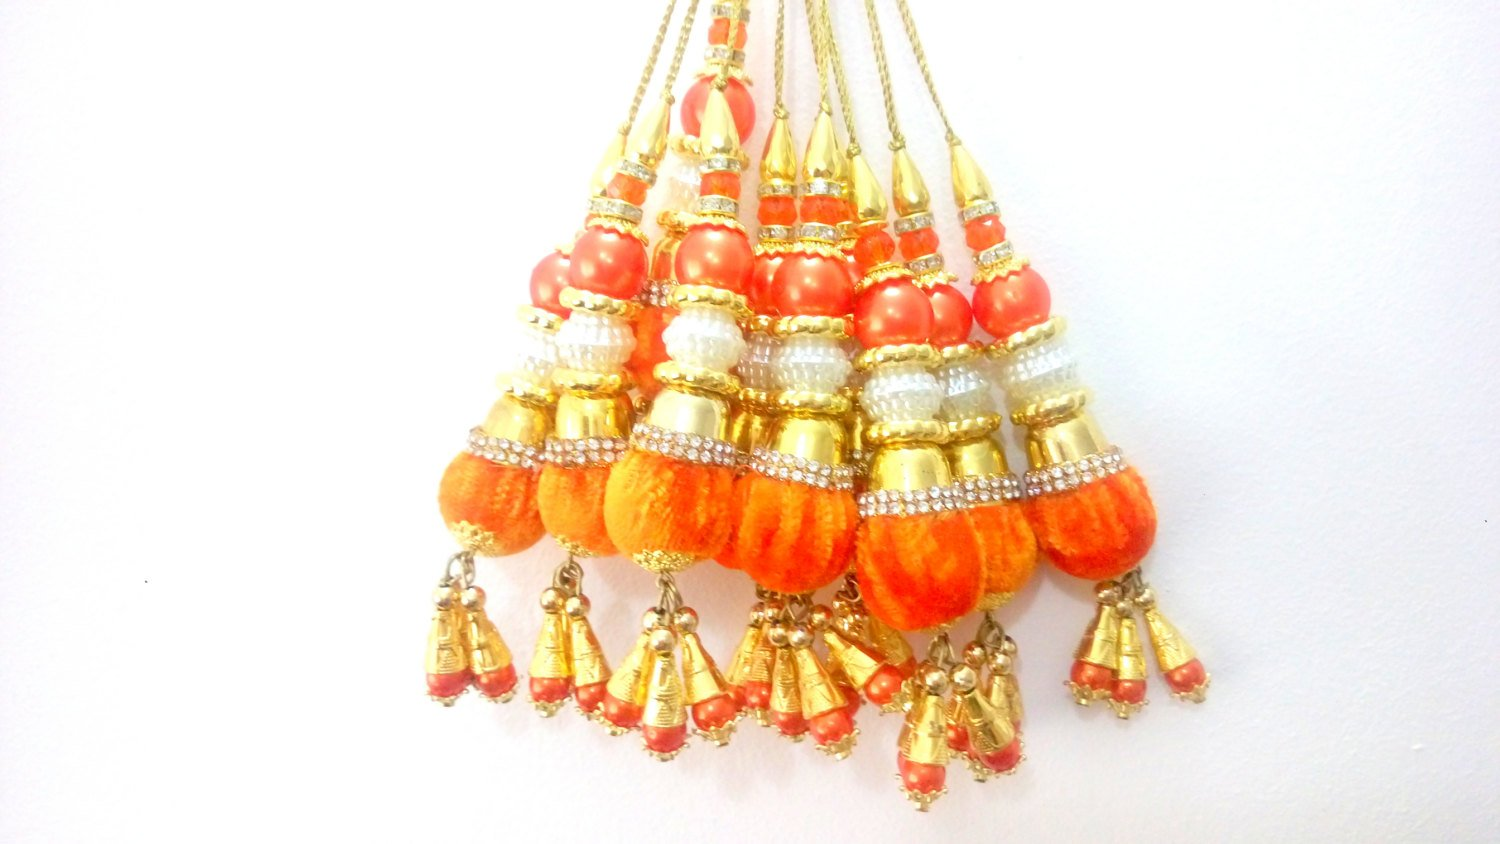 Tassel dress designing Bridal Blouse accessories cloth Tassel Cloth tassel Beaded Latken Sari Latken-Length 4 inches-Price for a Pair-IDLA55: Amazon.co.uk: ...